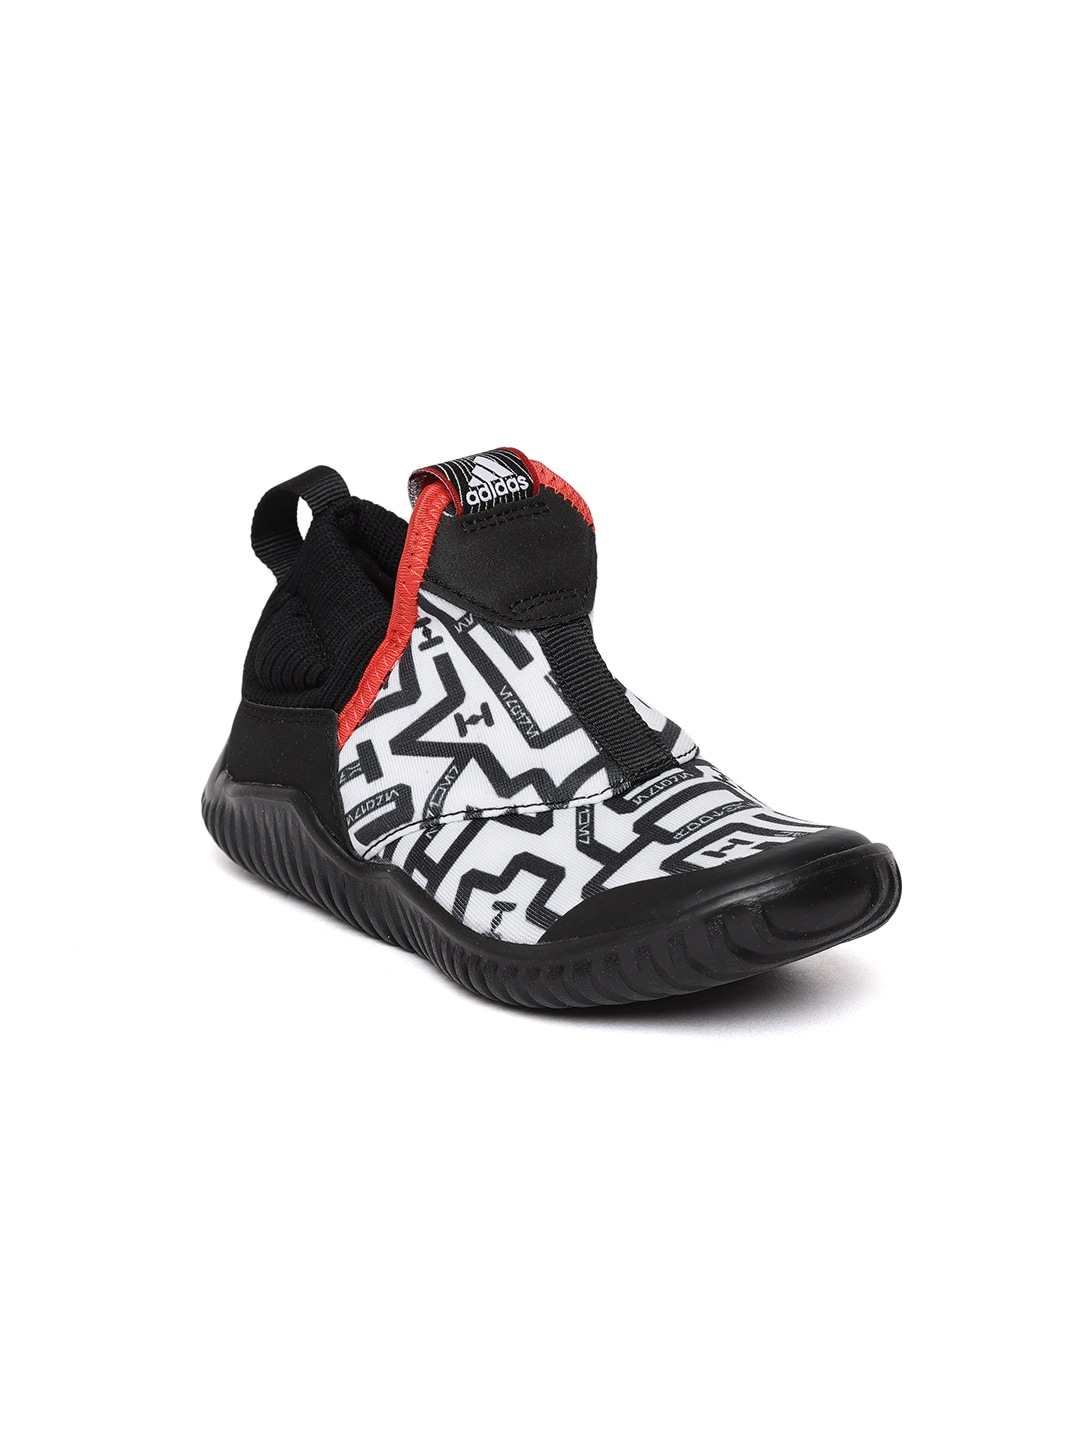 huge discount f5bfd bc49b Adidas Shoes - Buy Adidas Shoes for Men  Women Online - Mynt